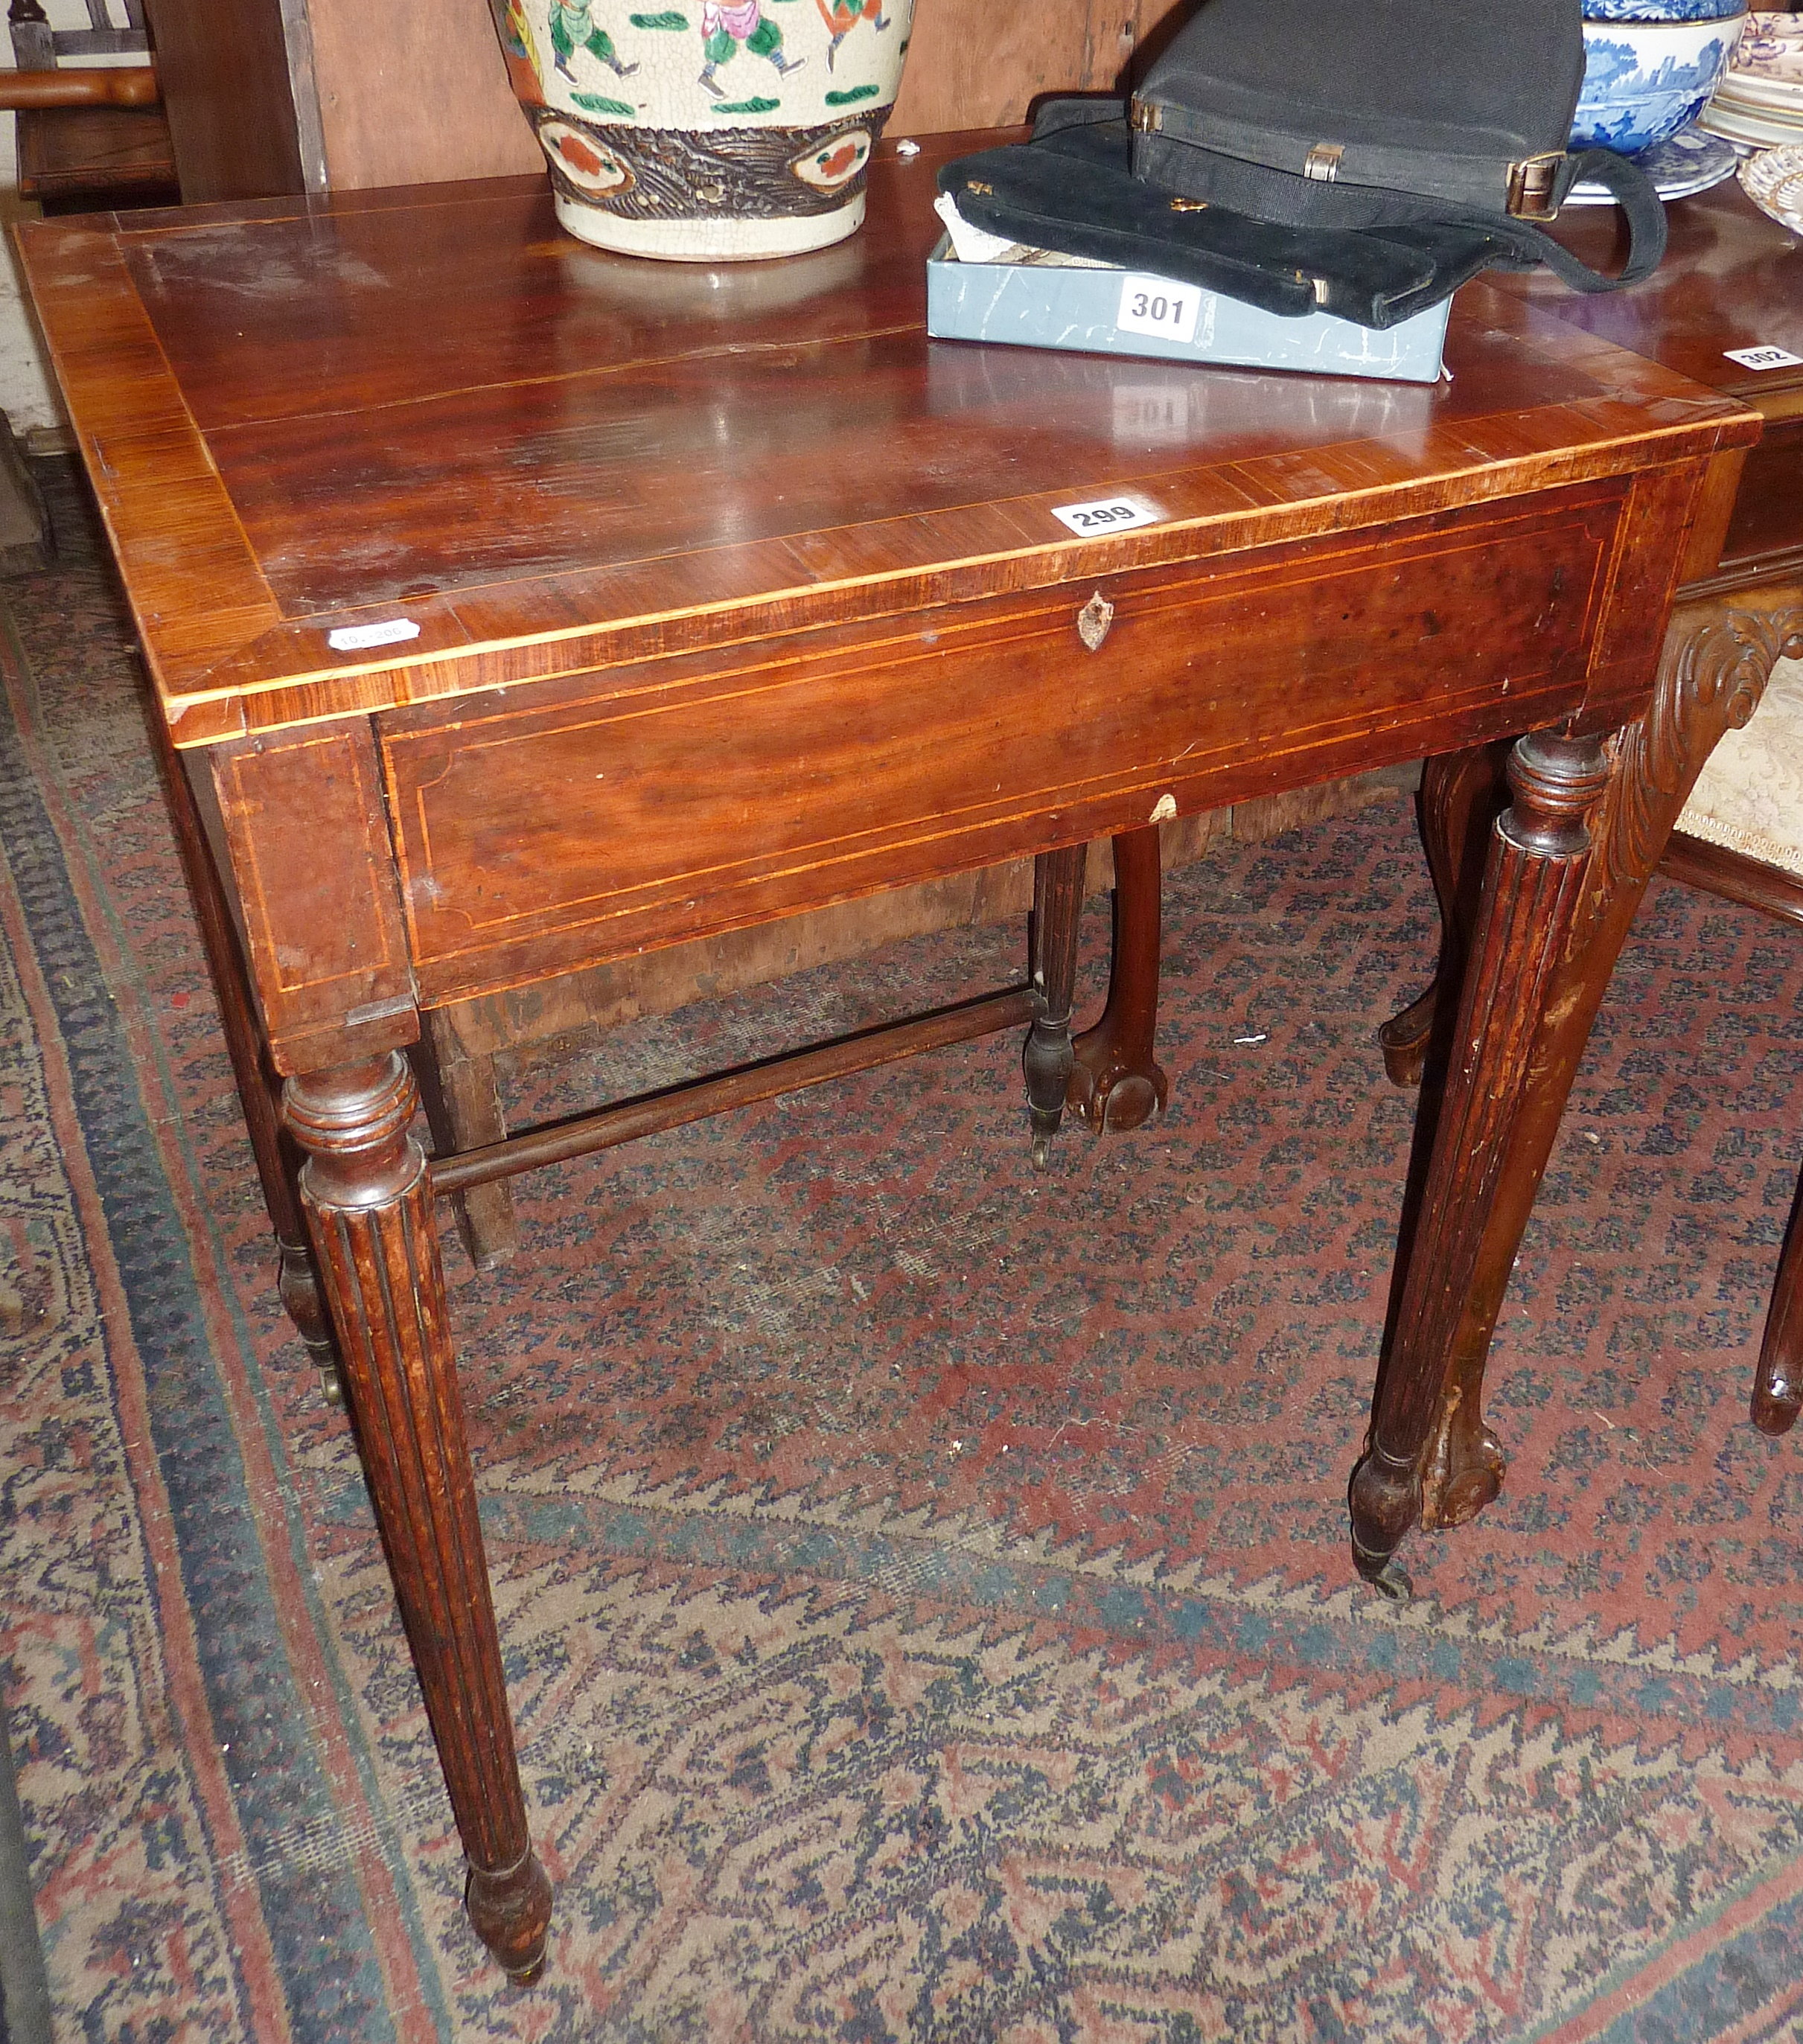 Lot 299 - 19th c. cross banded mahogany ladies writing table with single drawer having fitted interior above